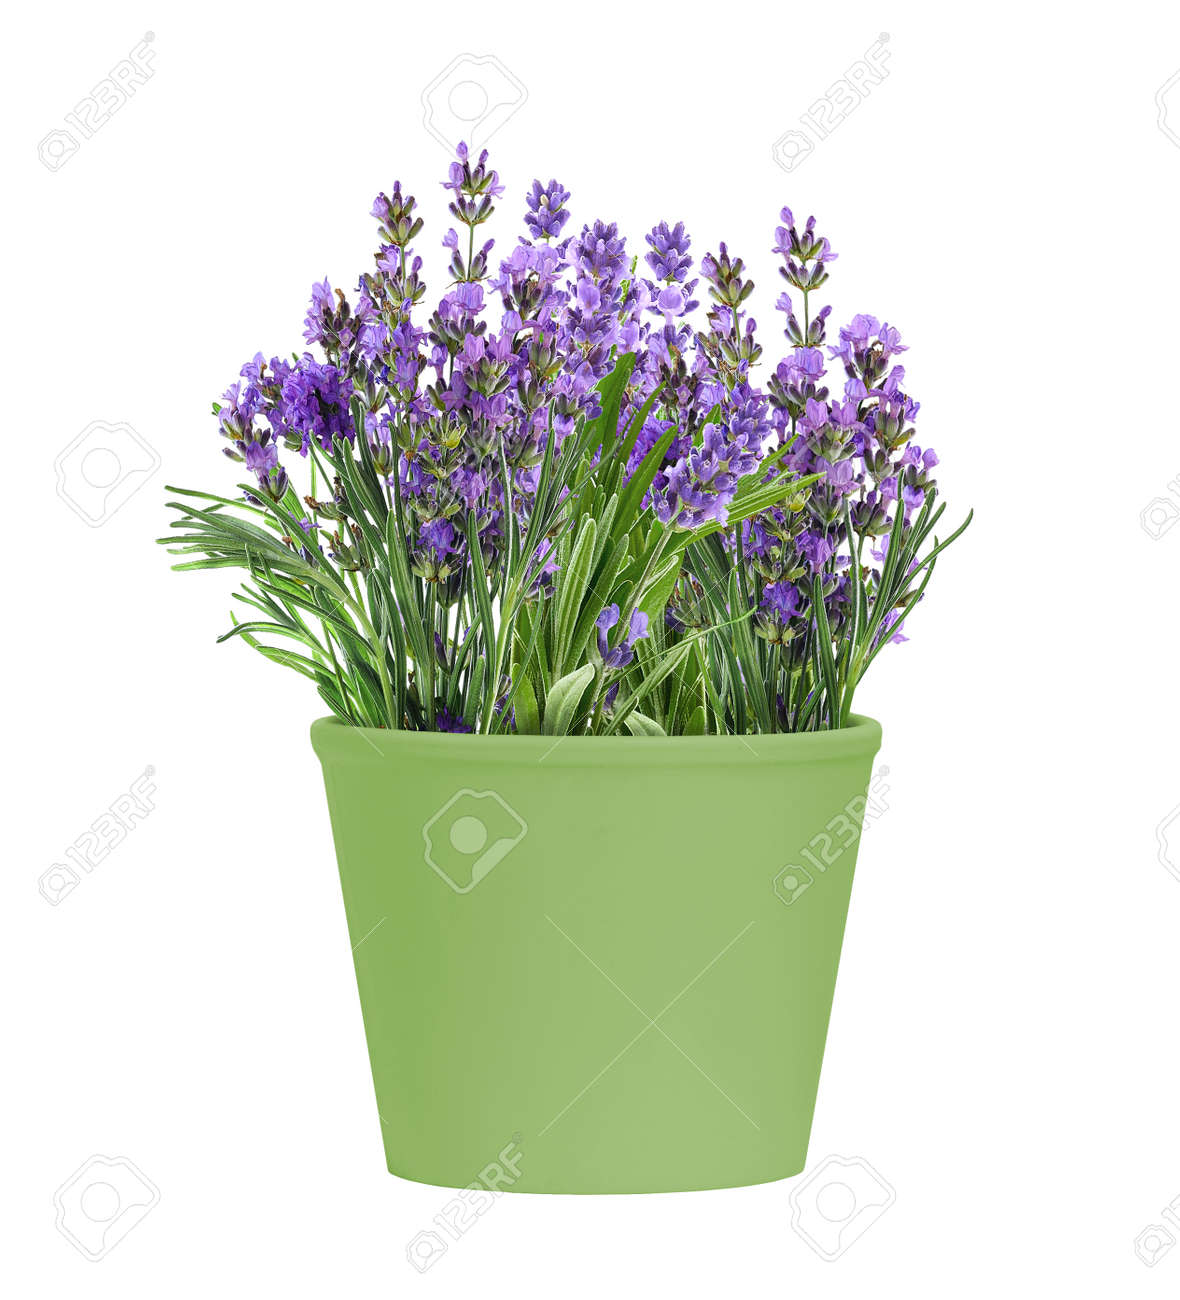 Green Pot of blooming lavender flowers isolated on white background - 173179303